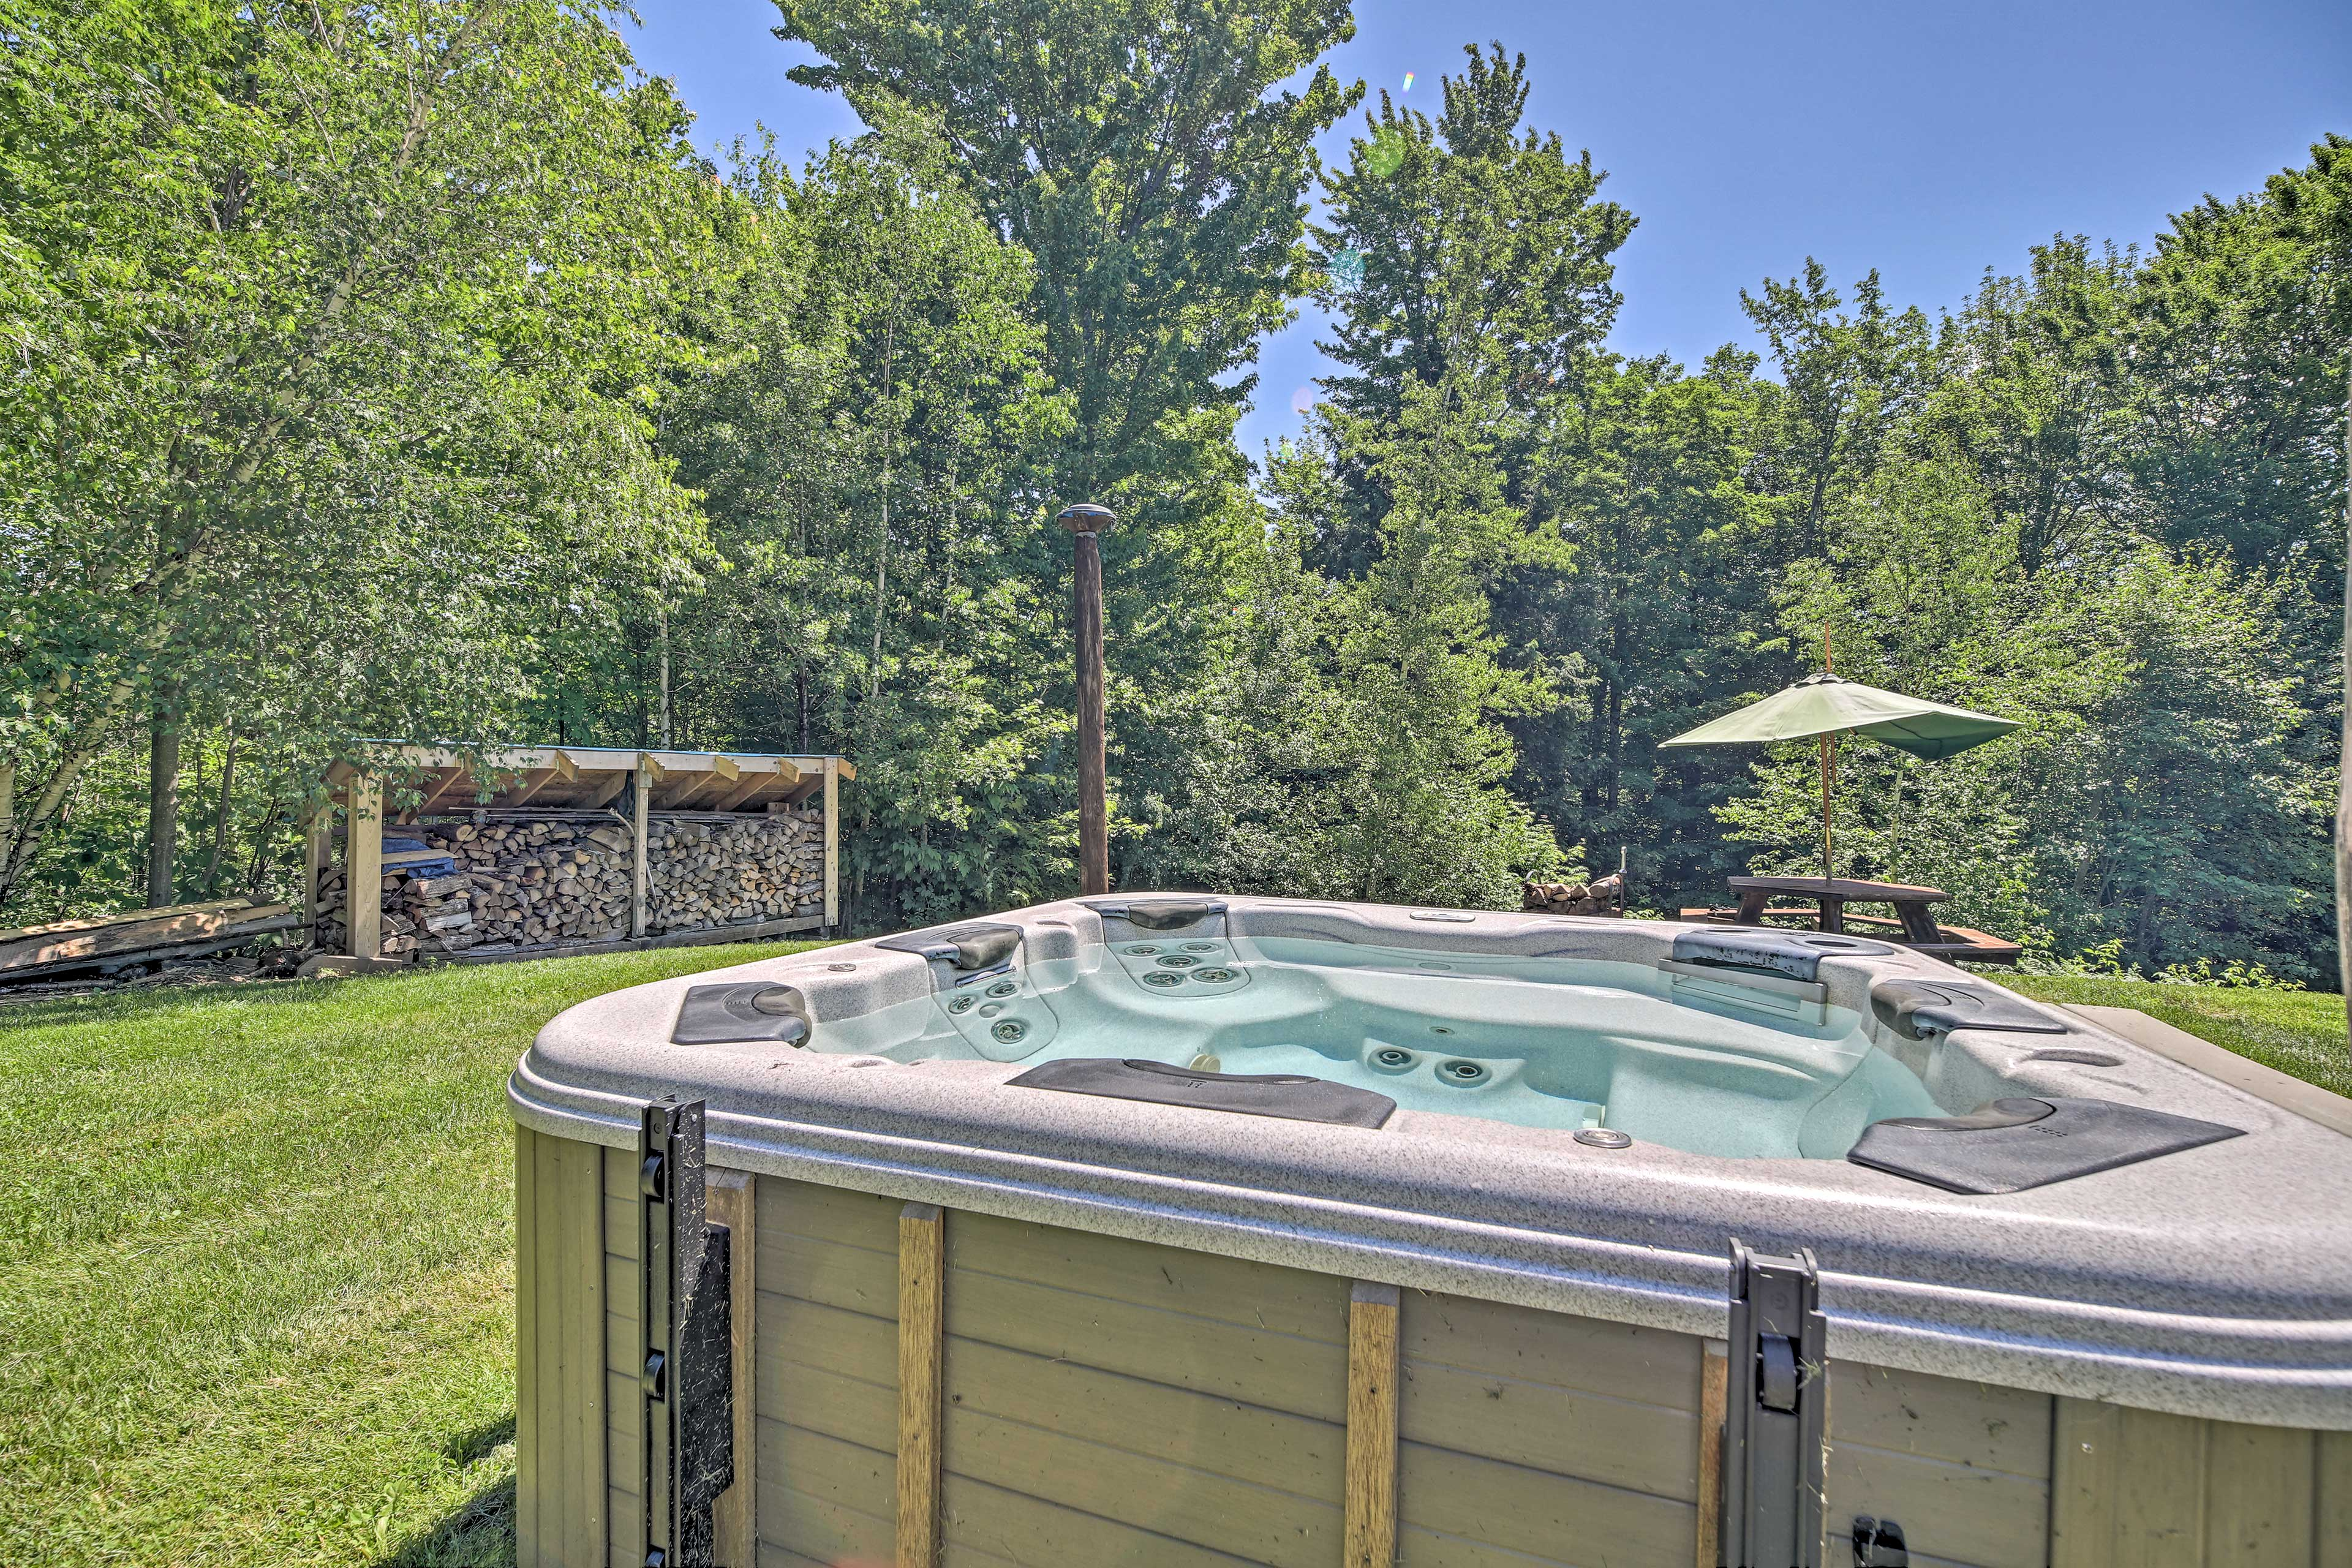 Use the hot tub and fire pit as you revel in your beautiful setting!